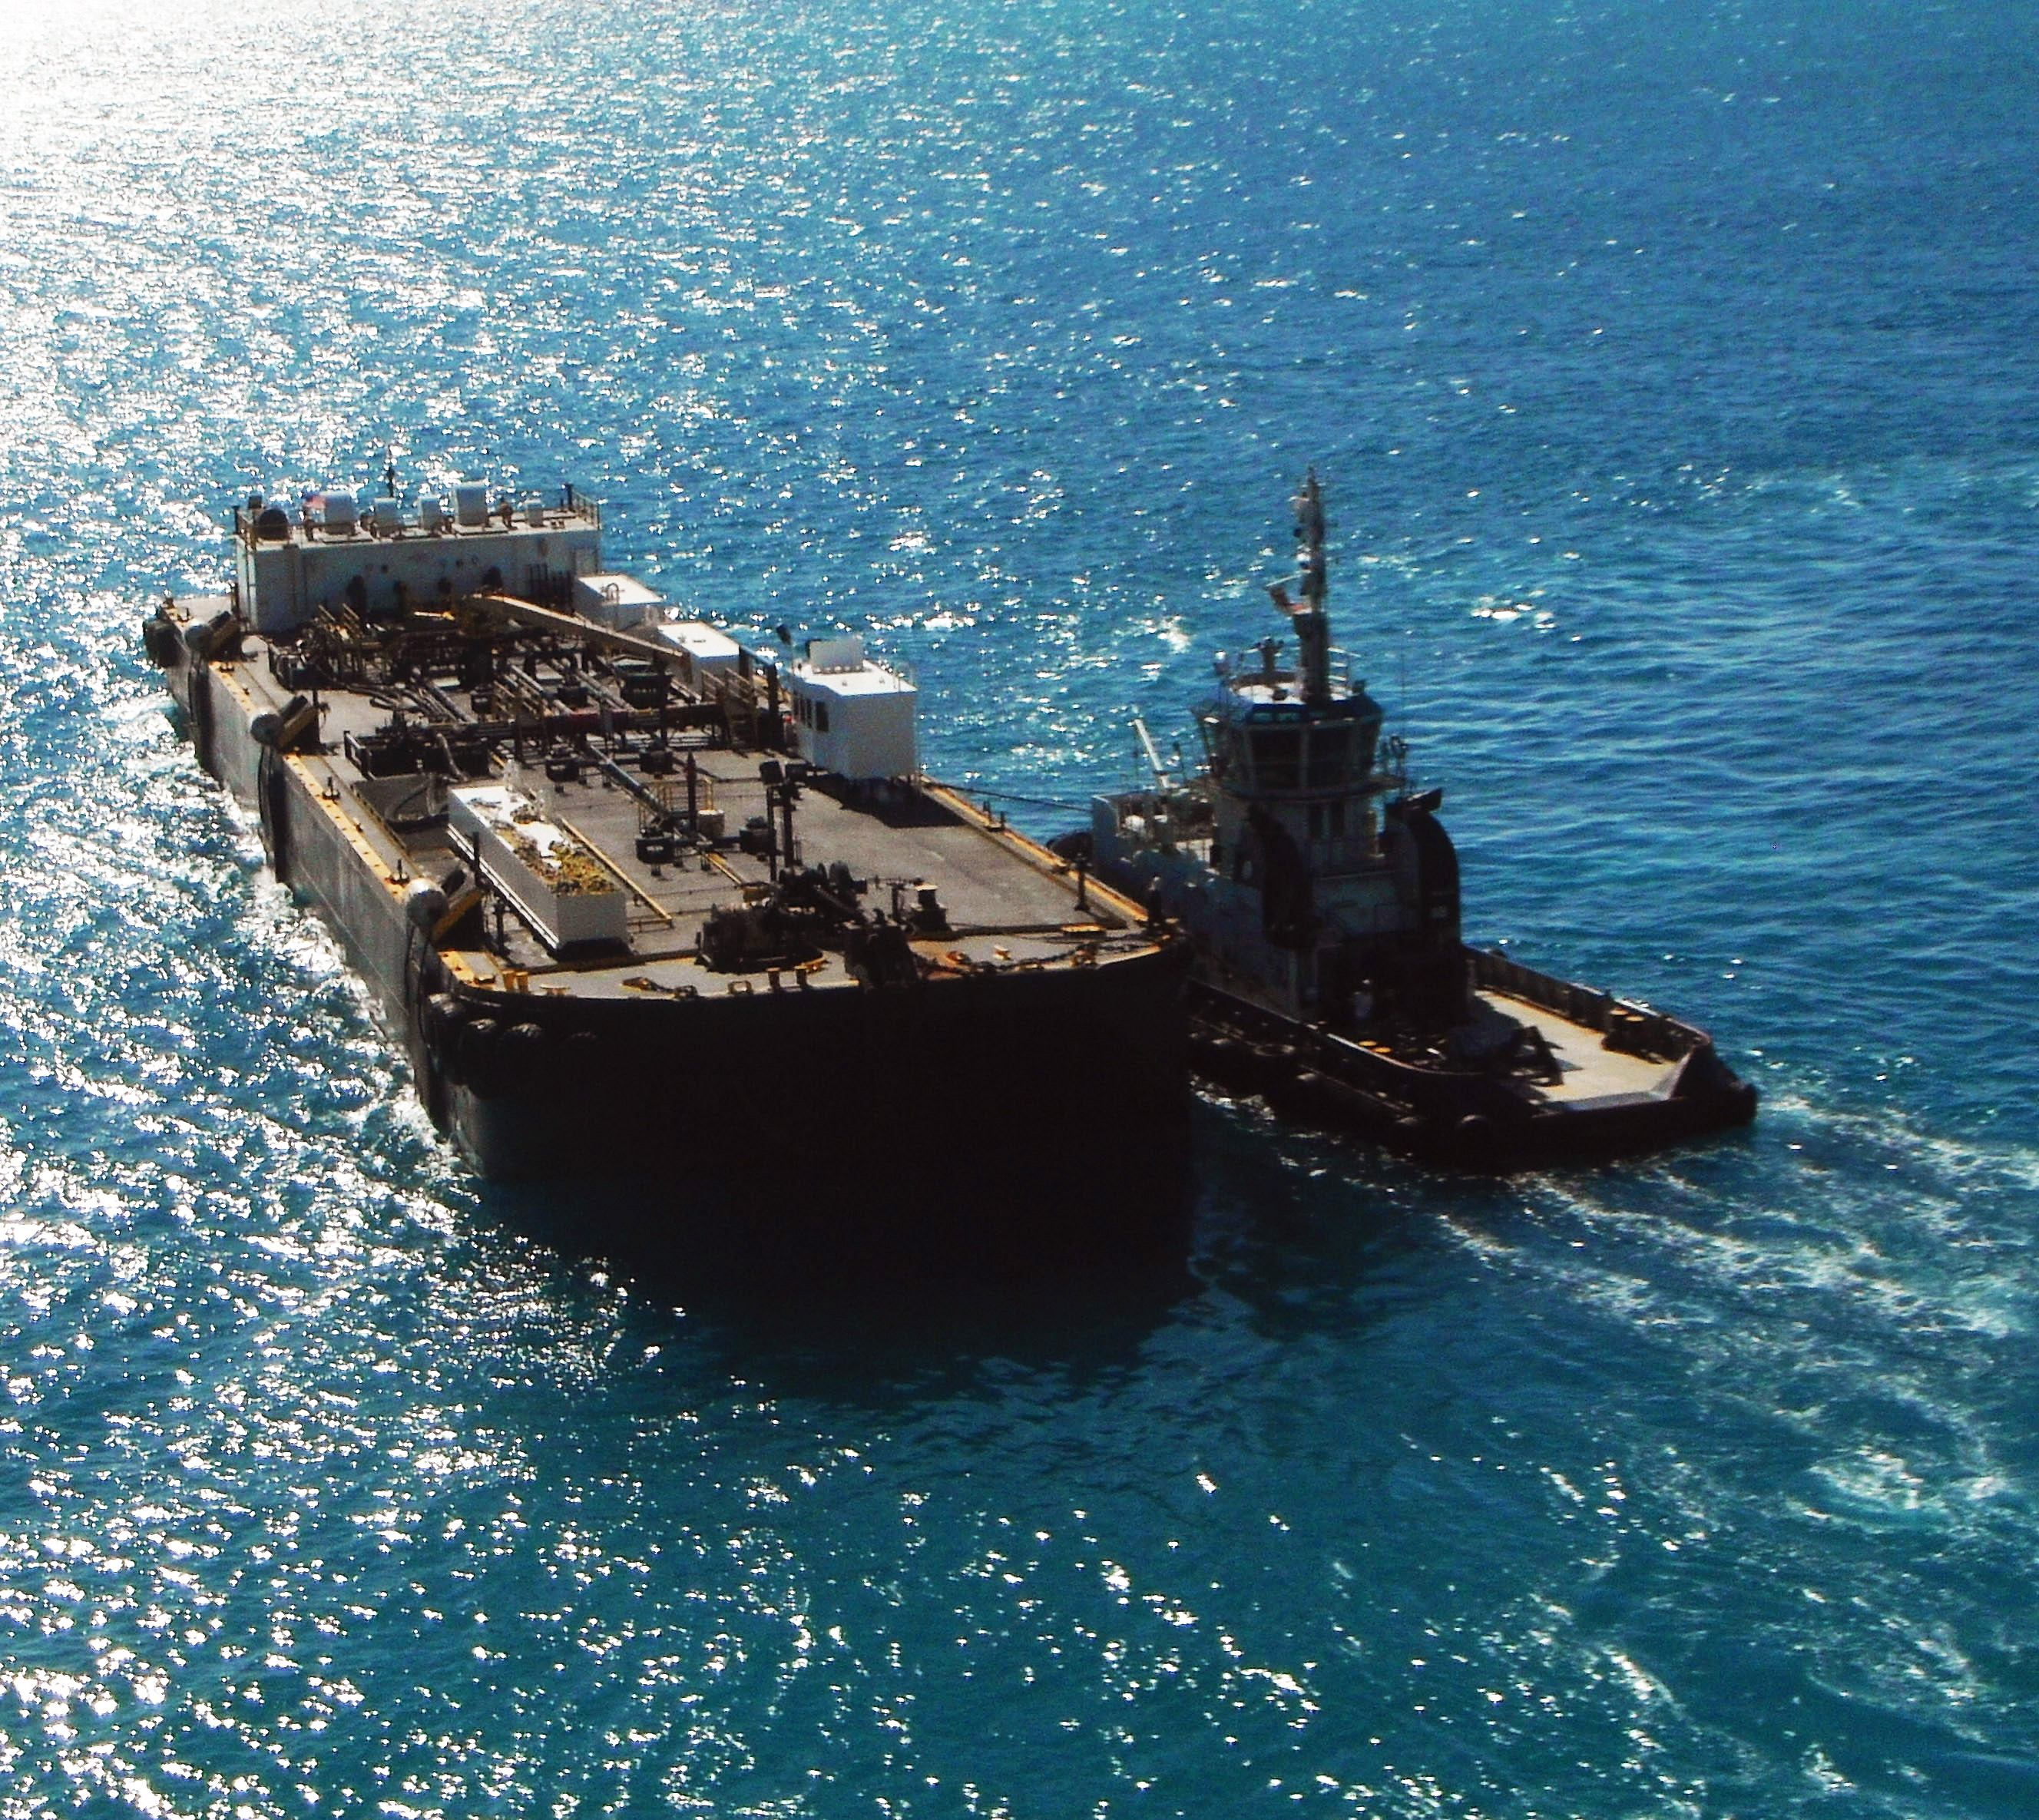 Tug Boat Escorting Fuel Barge To Fuel Depot